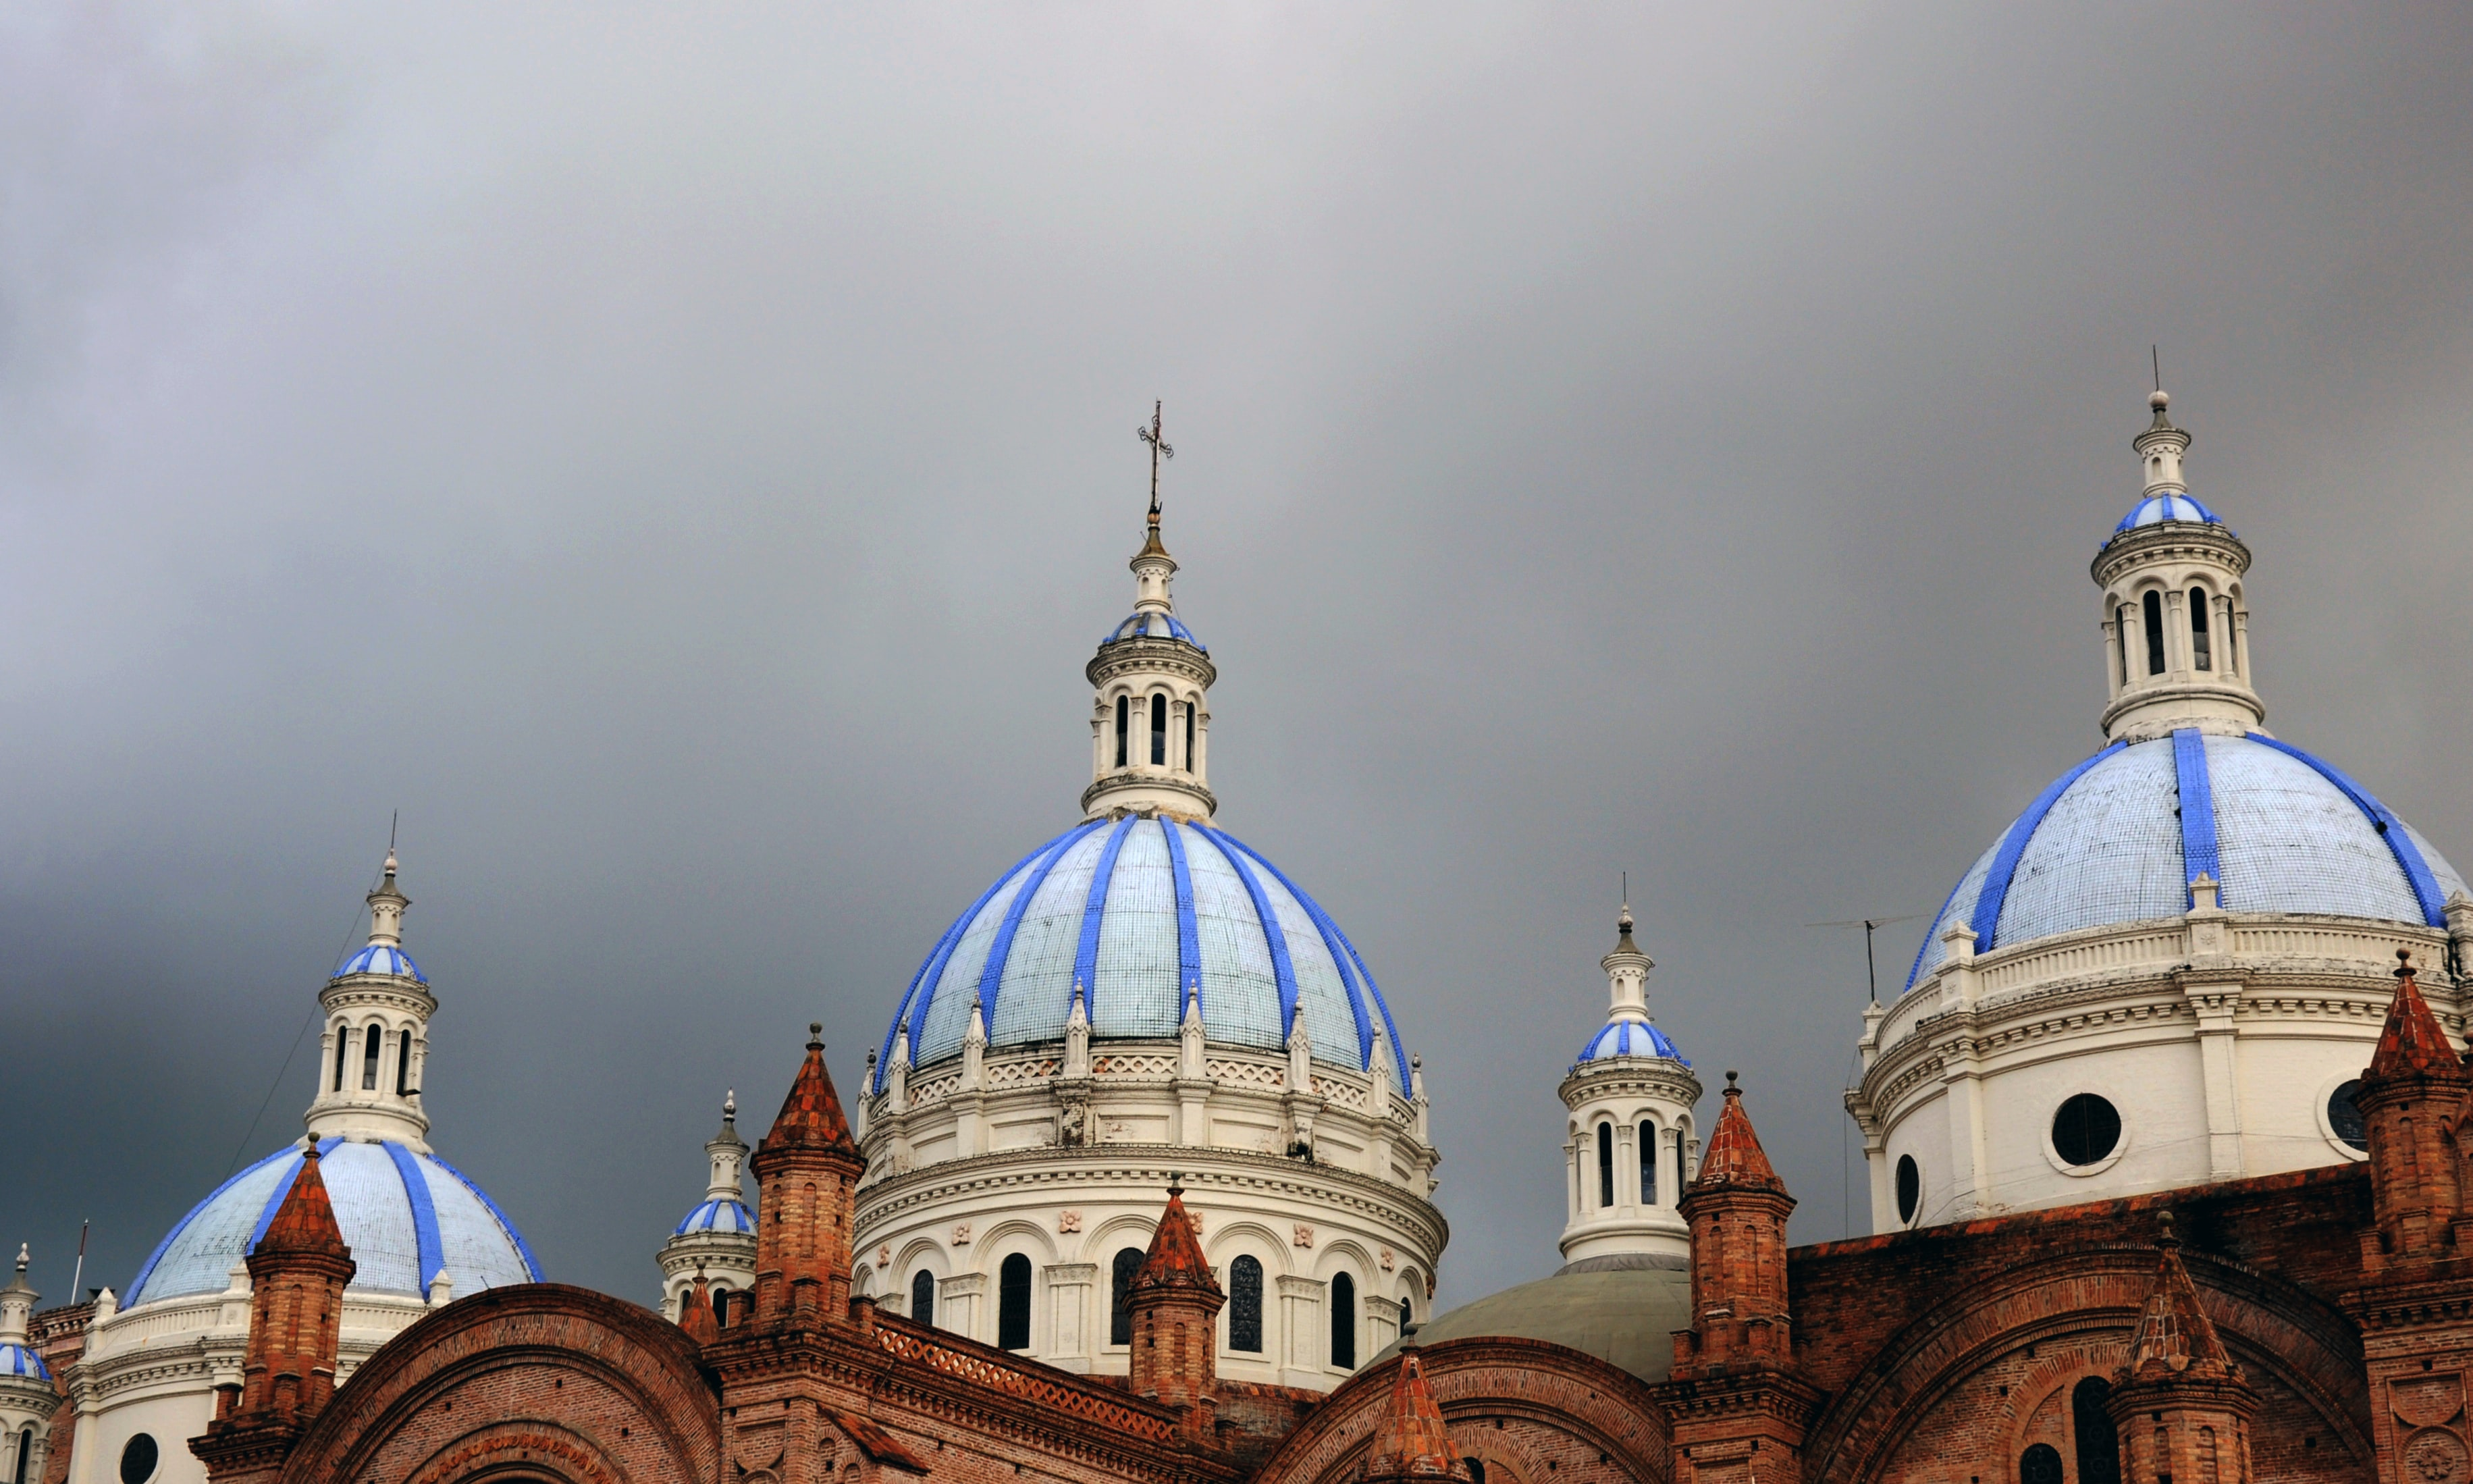 architectural photography of blue and white cathedral